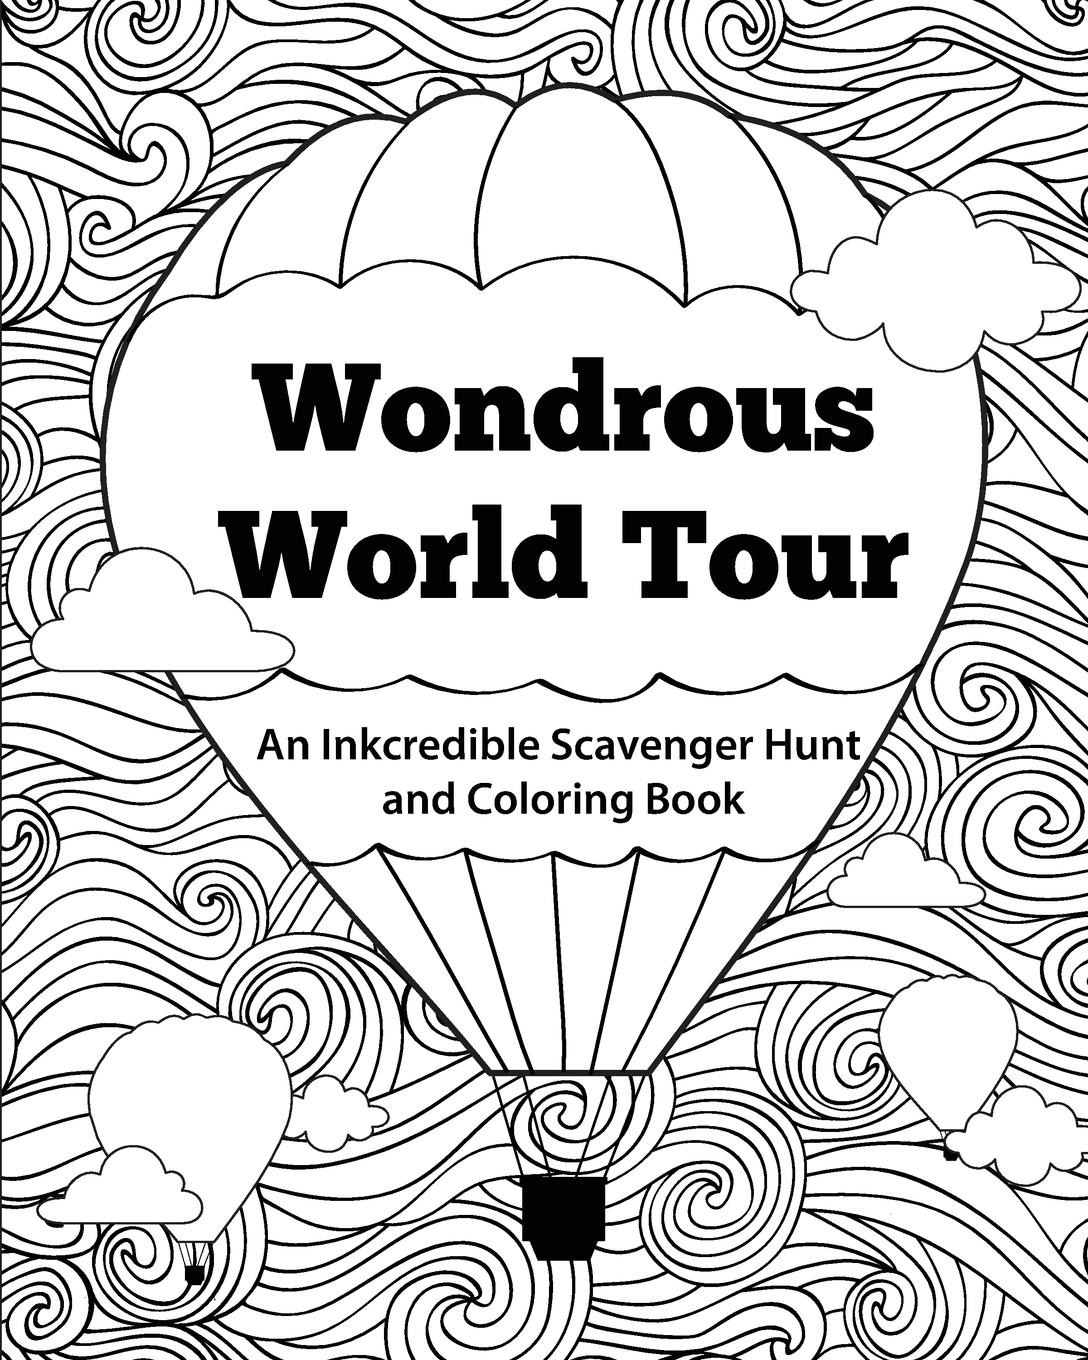 Wondrous World Tour: An Inkcredible Scavenger Hunt and